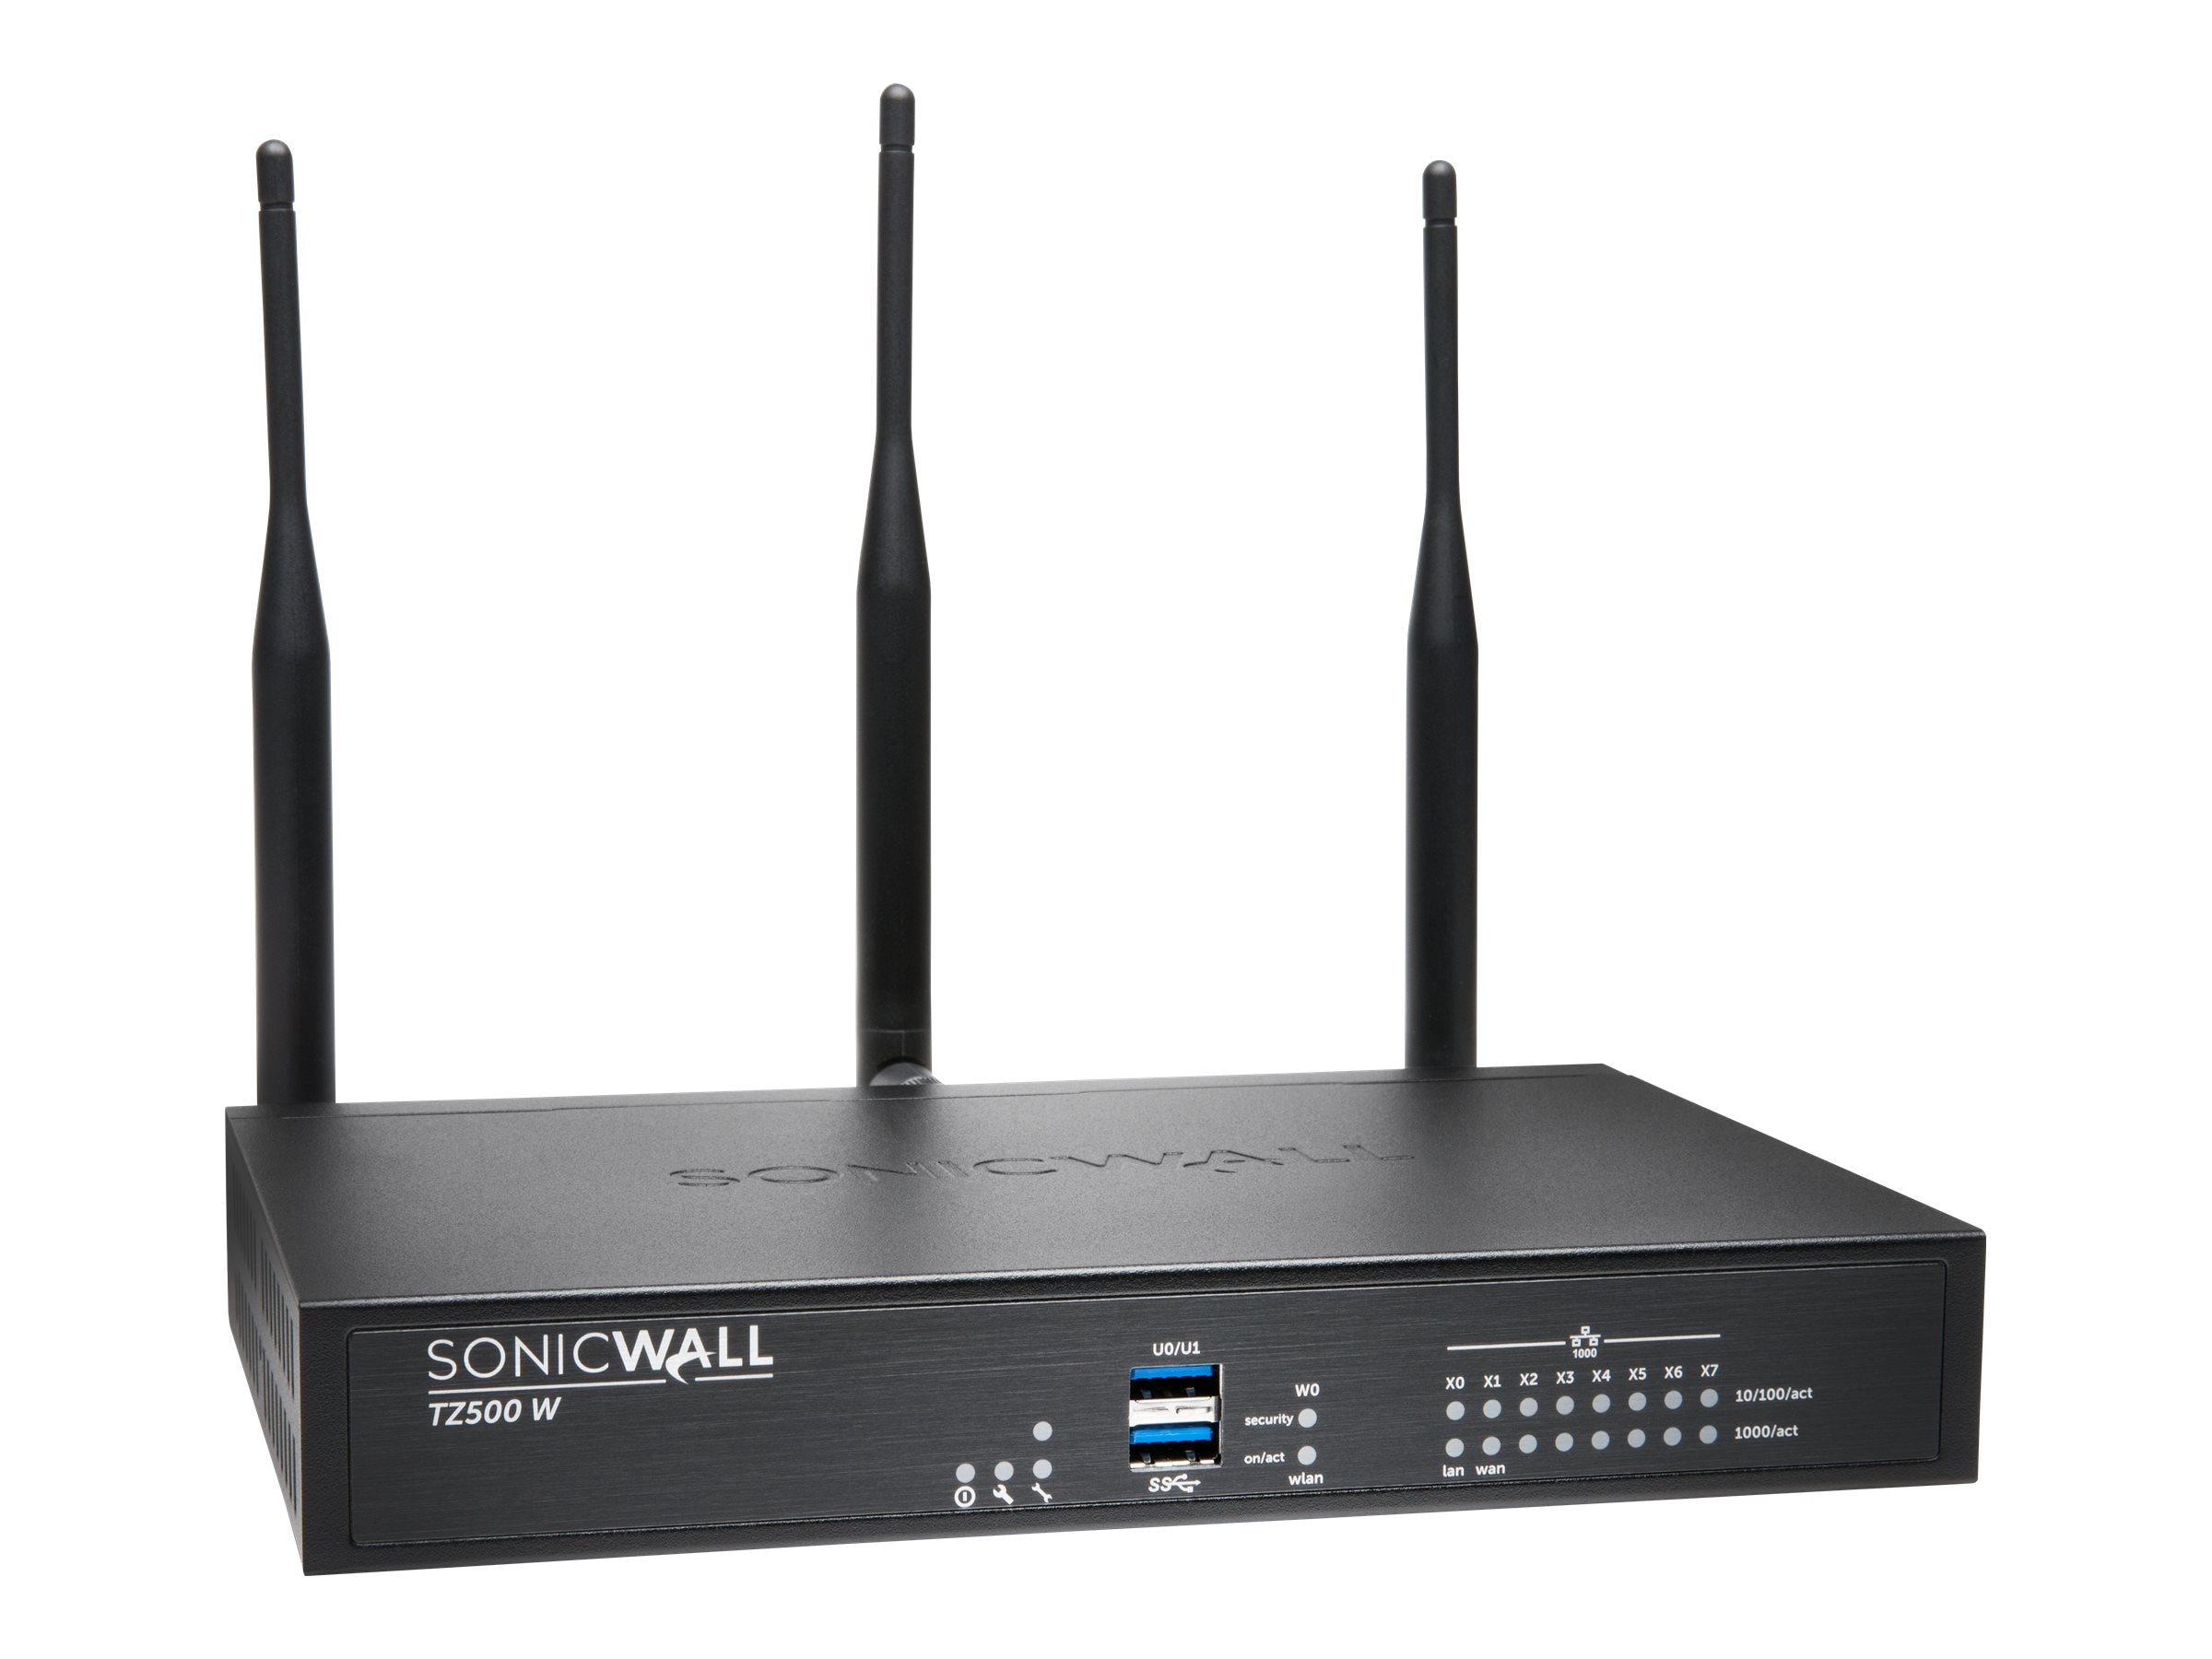 SonicWALL 01-SSC-1709 Image 3